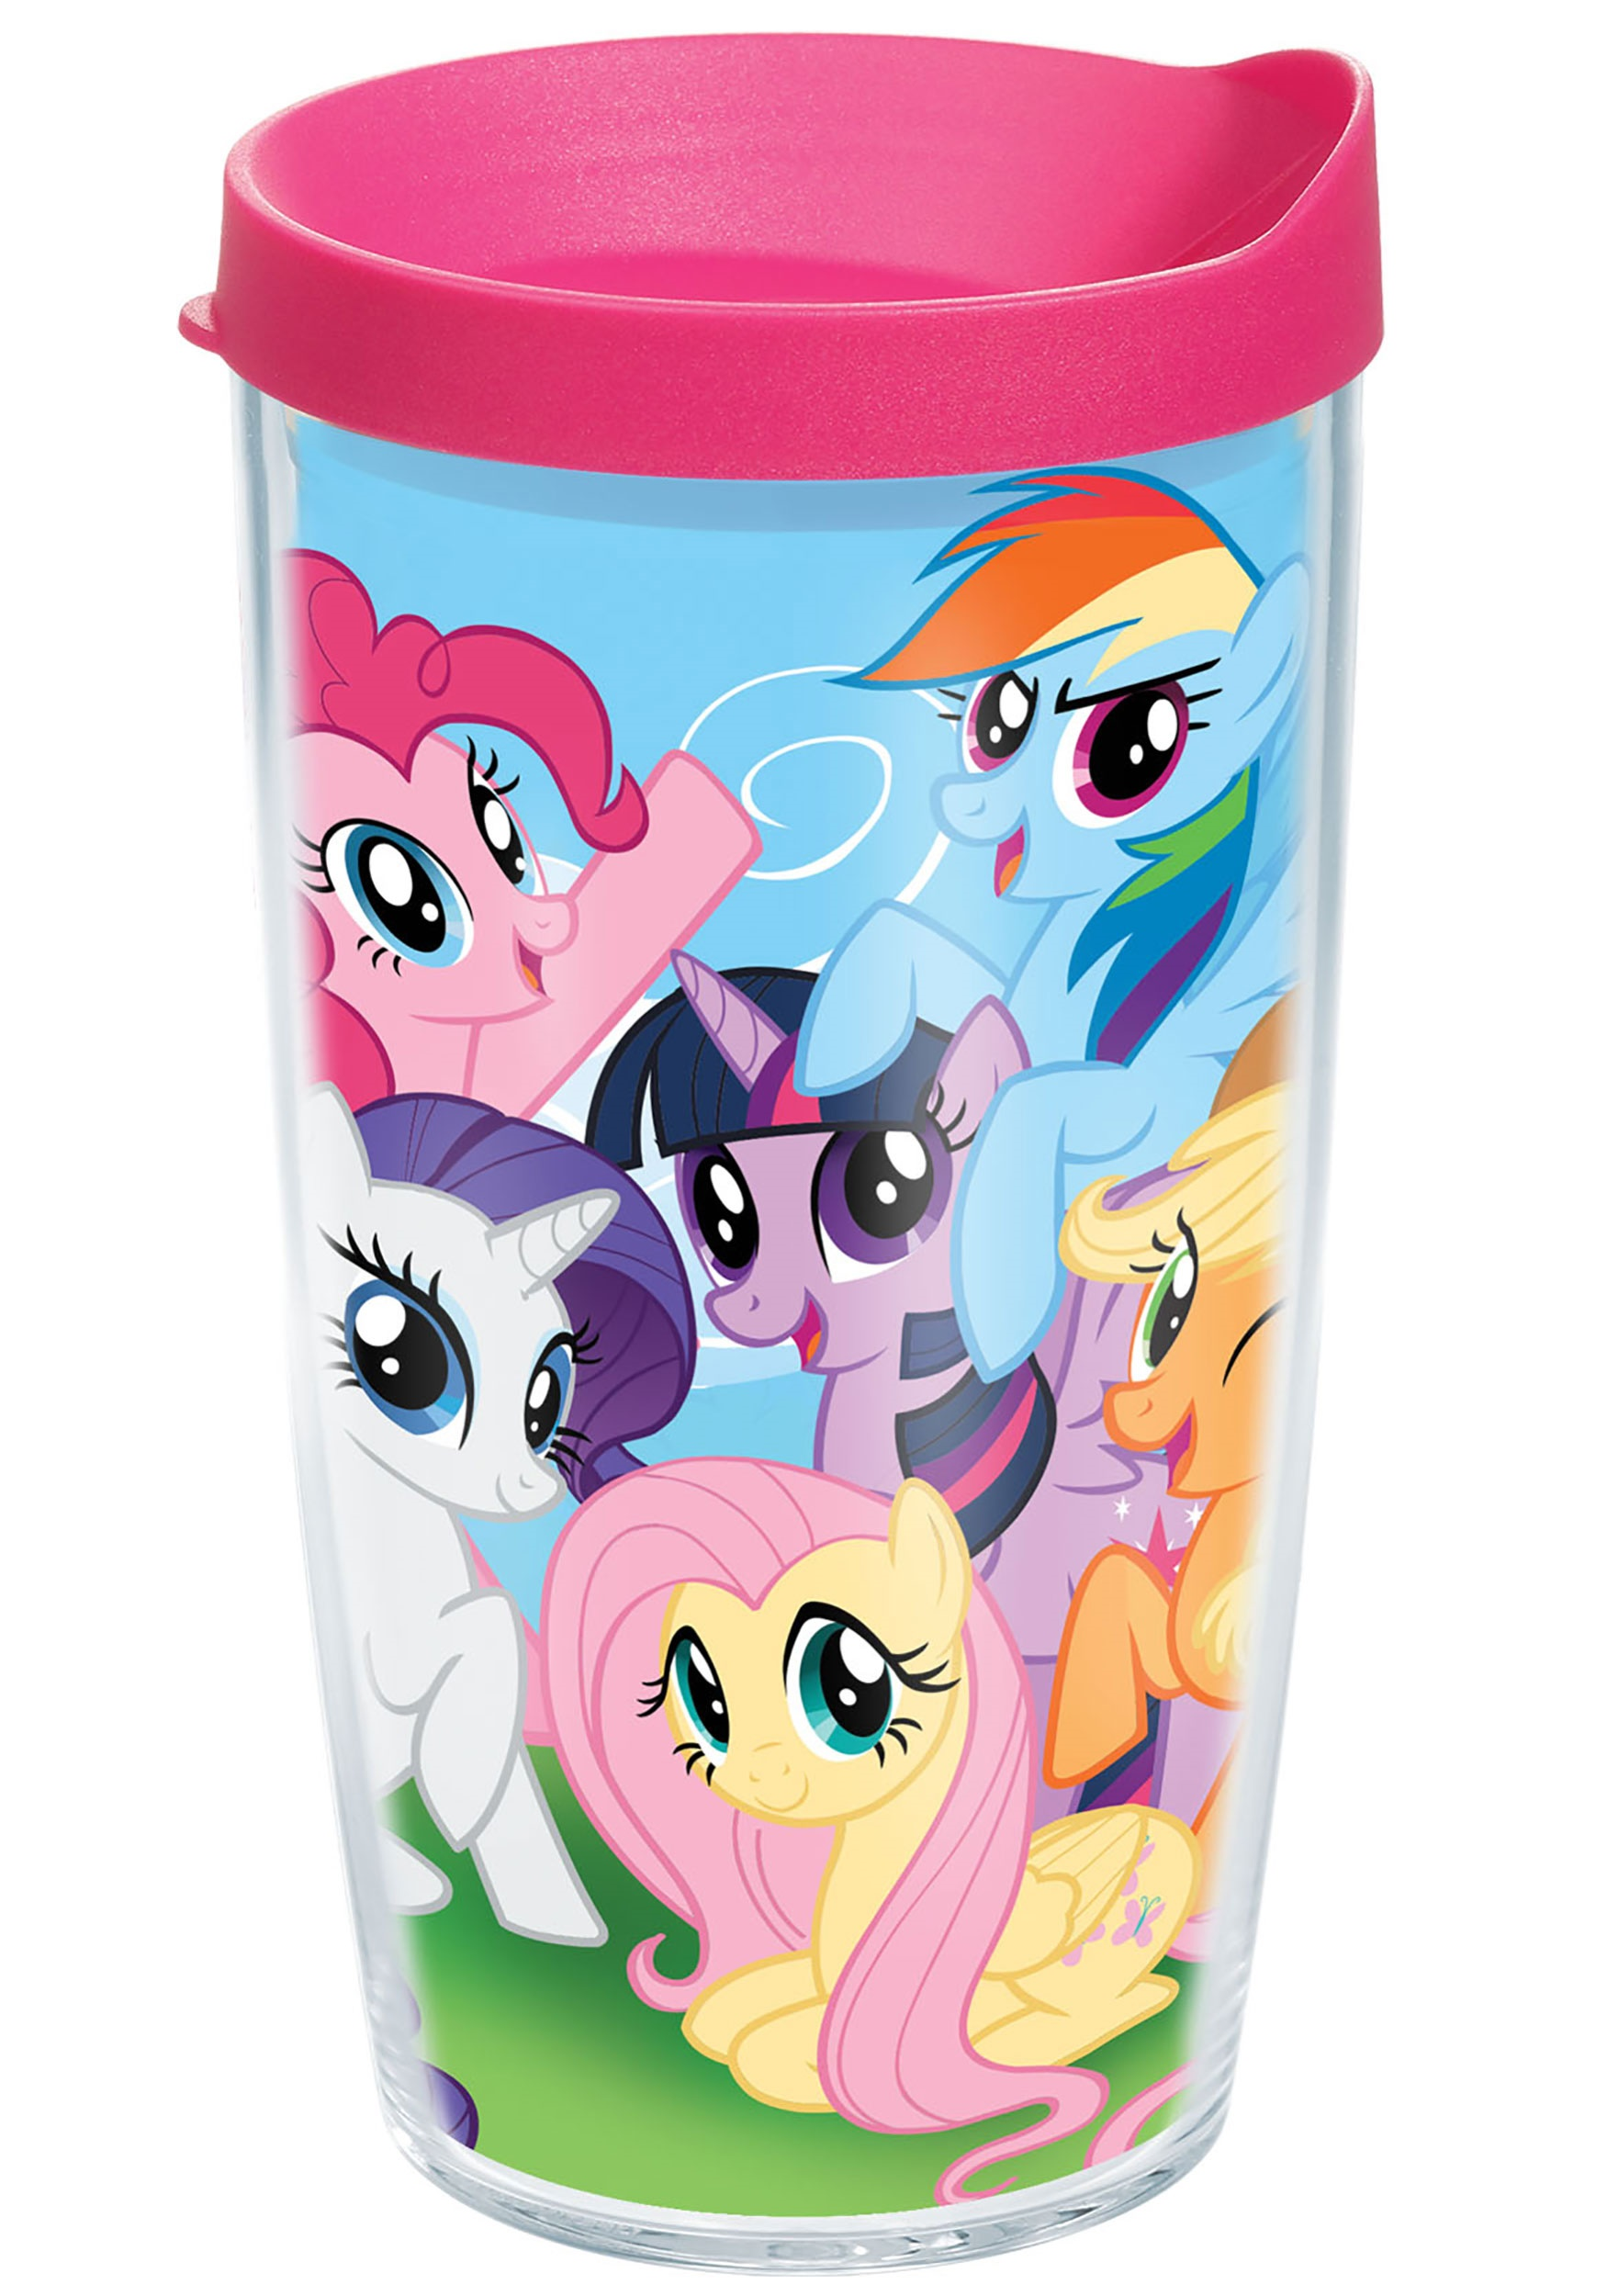 My Little Pony Mane 6 16 oz Tumbler w/ Pink Lid TER1228994